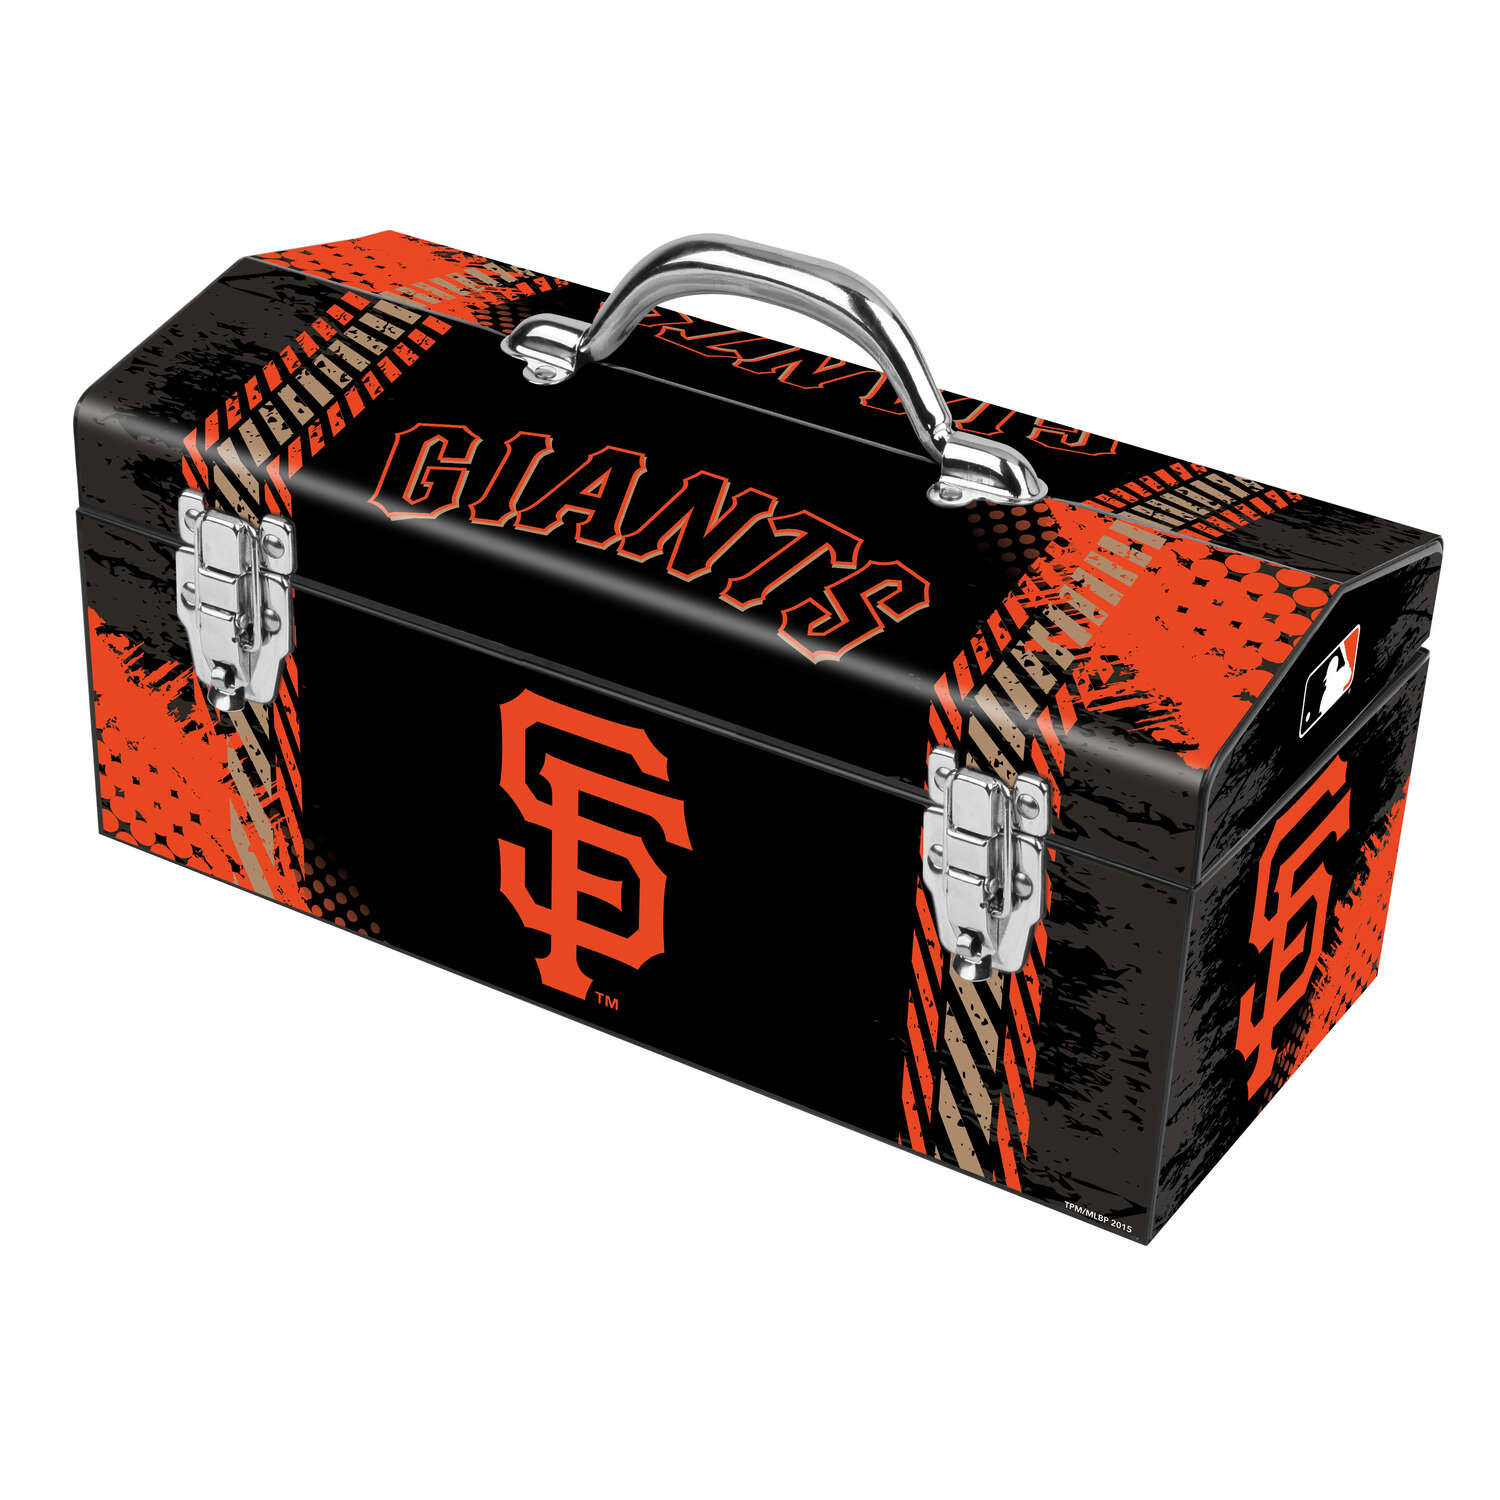 Windco  16.25 in. Steel  San Francisco Giants  Art Deco Tool Box  7.1 in. W x 7.75 in. H Black/Orang